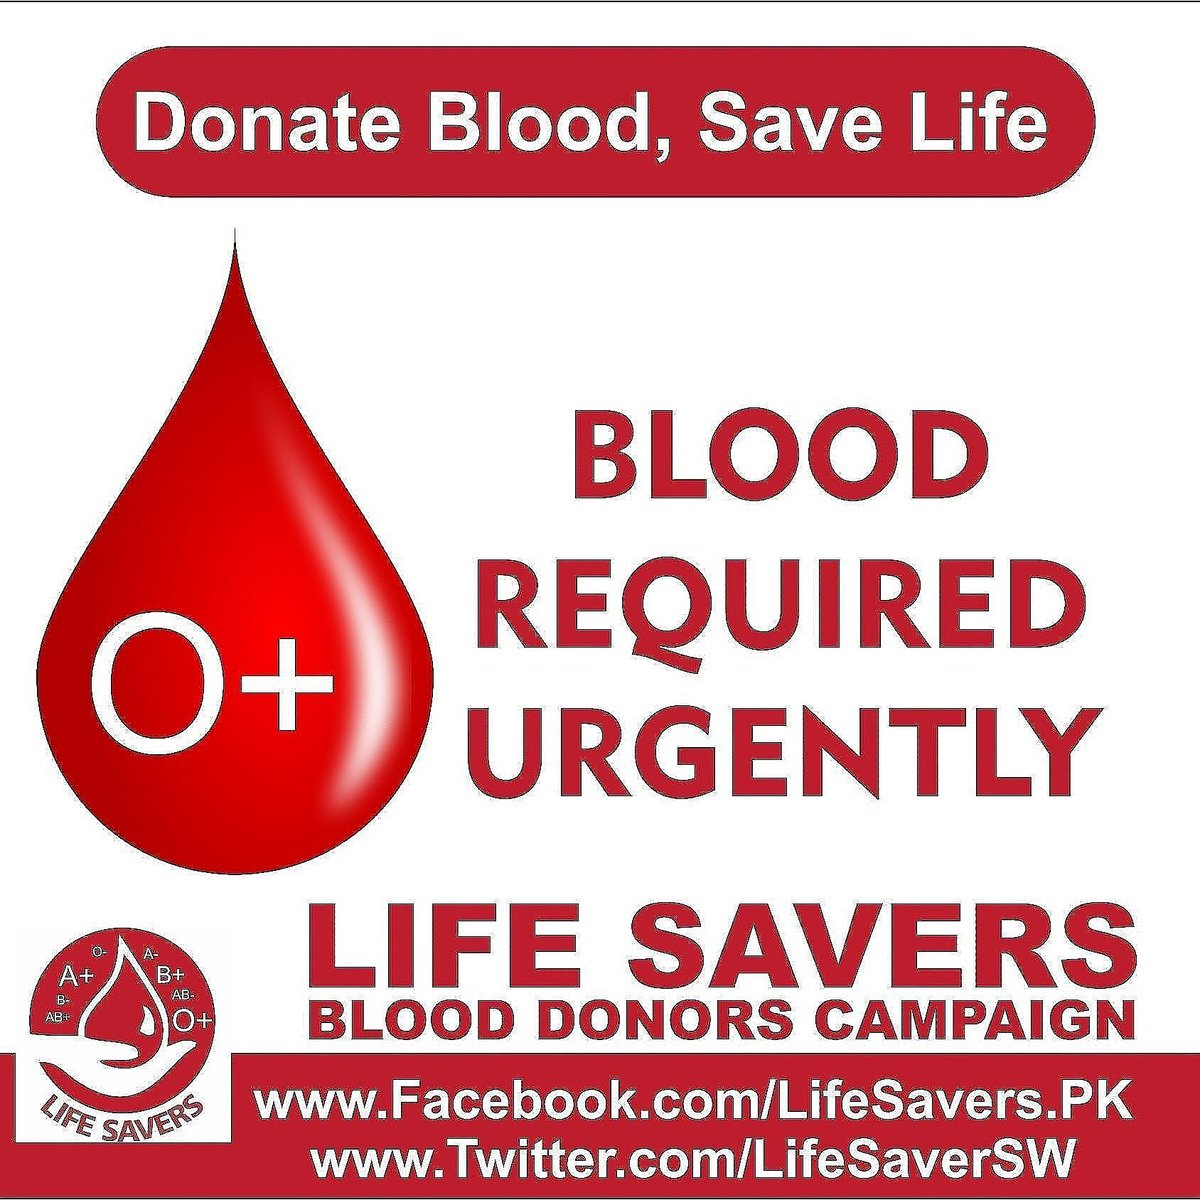 22/05/2017 A female patient urgently need O+ve blood at Dr. Syeda Amin Hospital Saidu Swat. Contact# 03369461811 #Donate #Blood #Save #Life<br>http://pic.twitter.com/Q6HtVCuQ9Y